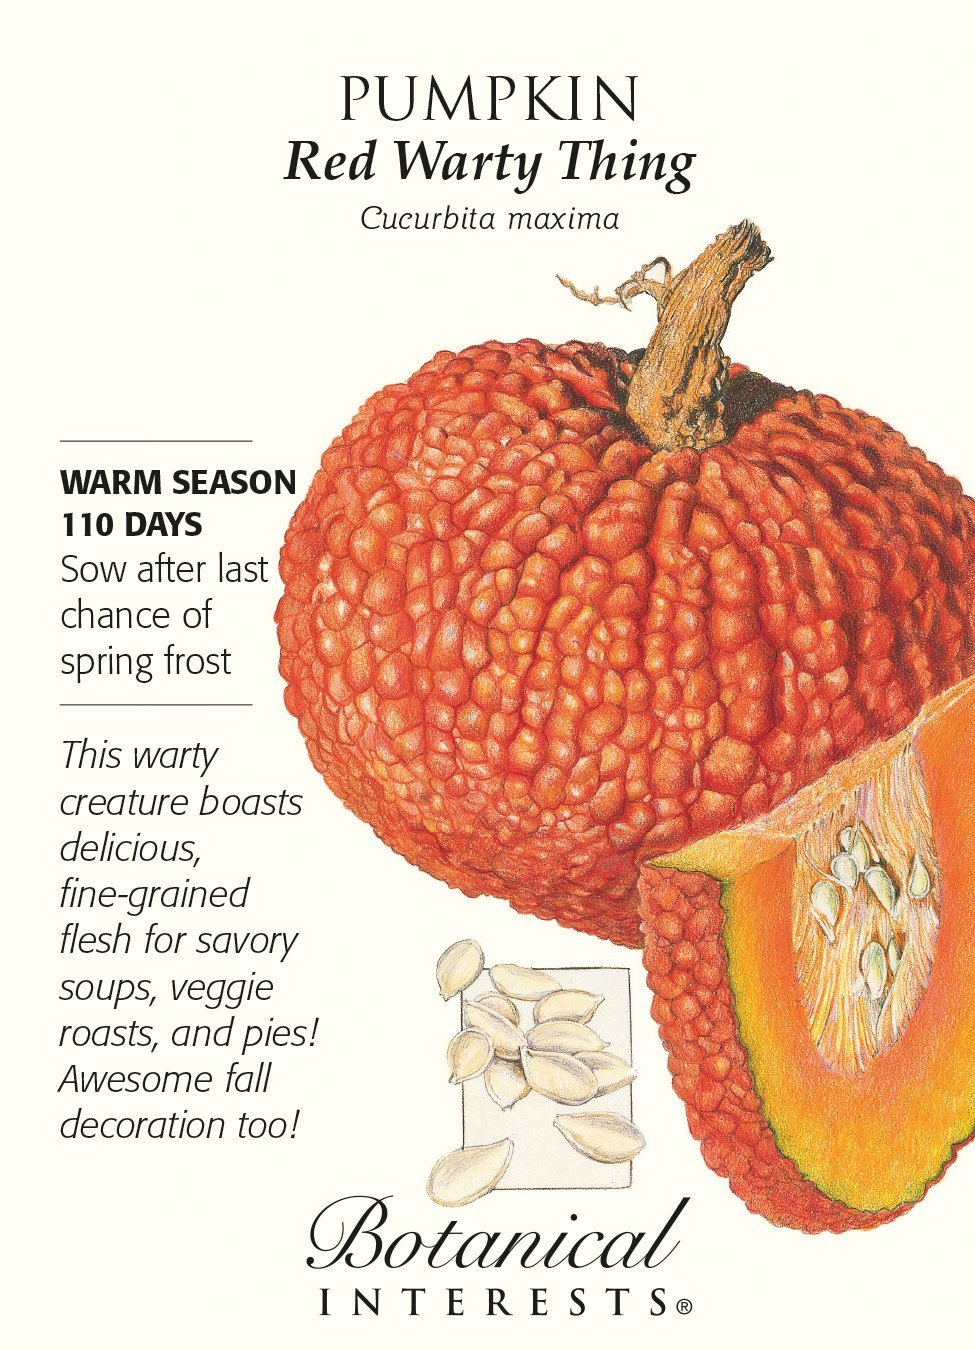 Red Warty Pumpkin